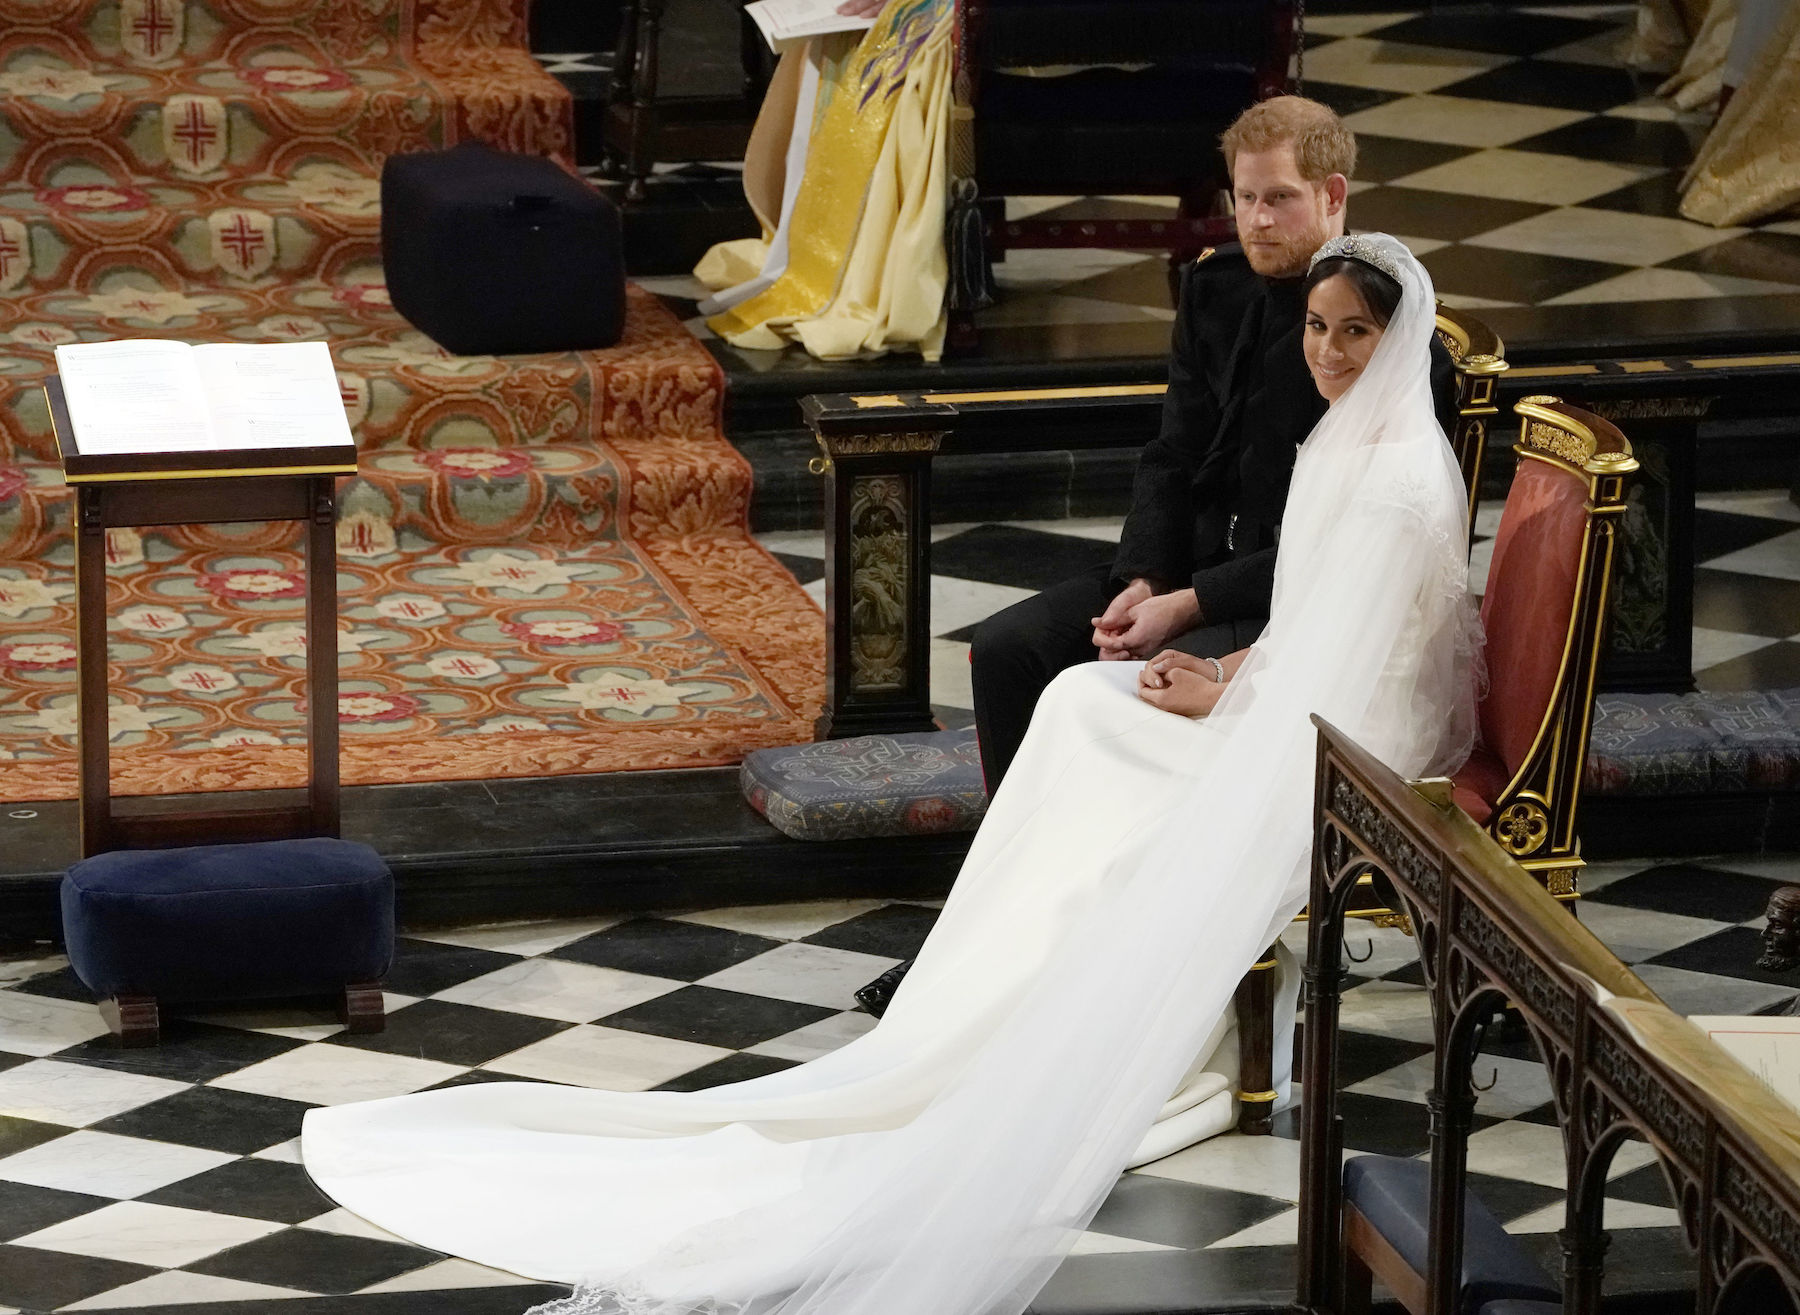 <div class='meta'><div class='origin-logo' data-origin='Creative Content'></div><span class='caption-text' data-credit='Owen Humphreys/AFP/Getty Images'>Britain's Prince Harry, Duke of Sussex (L) sits with US actress Meghan Markle (R) during the reading in St George's Chapel.</span></div>